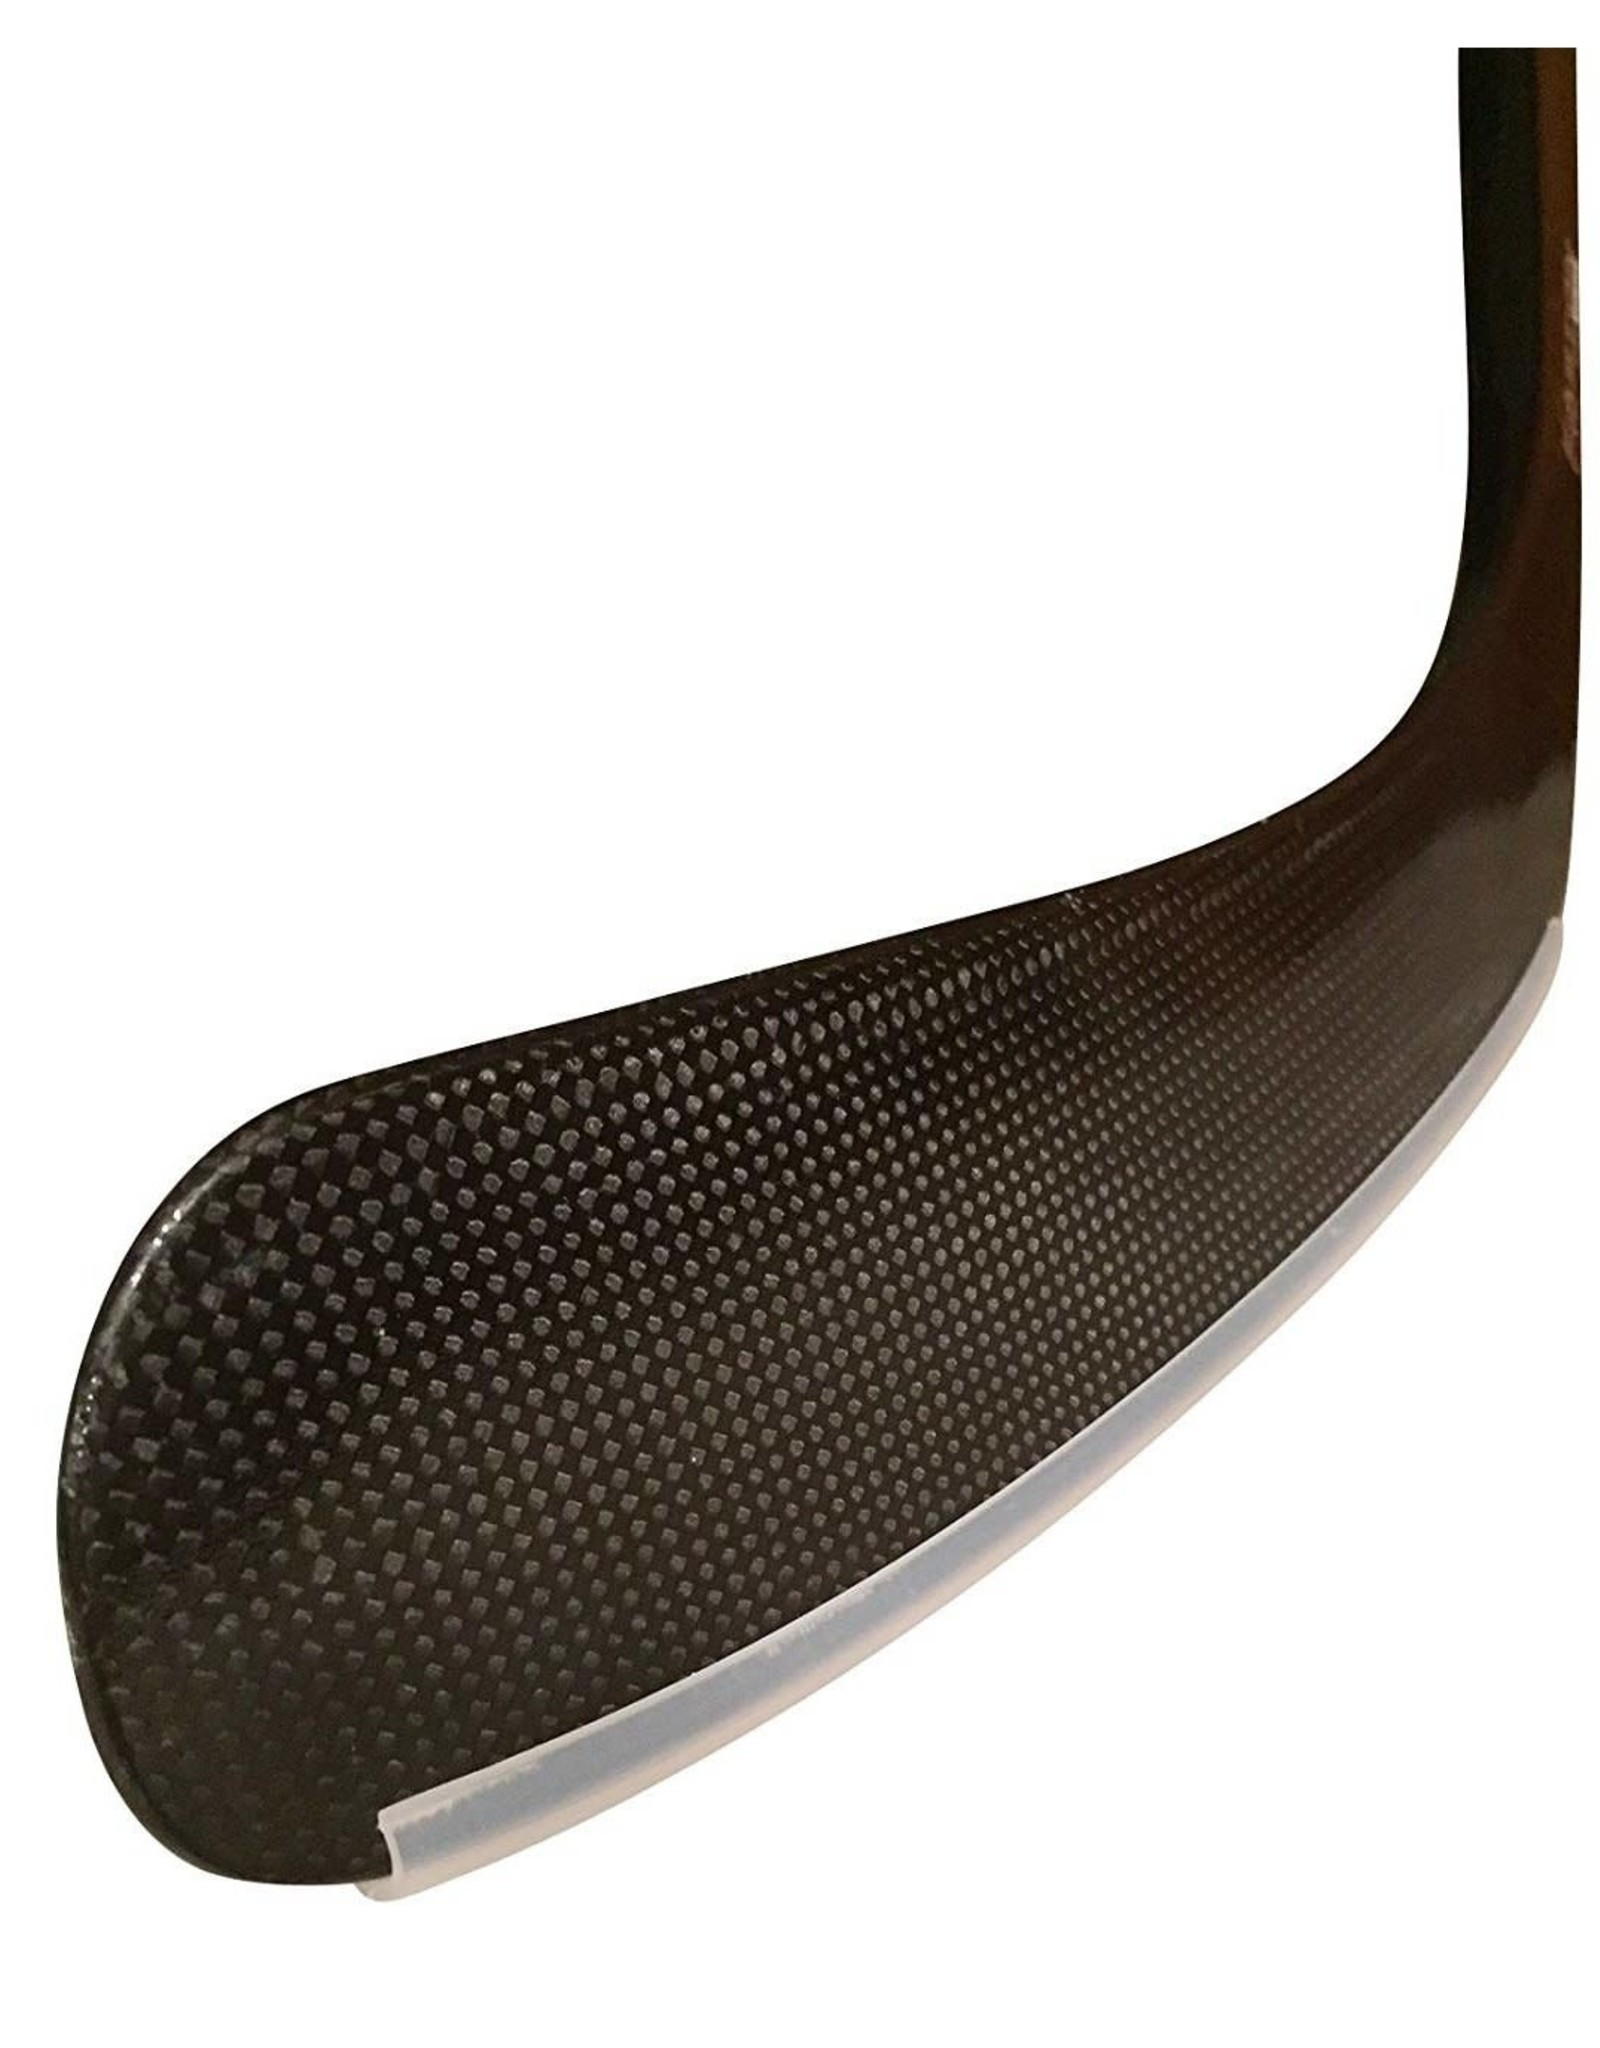 Sideline Sports BLADE ARMOR FOR ROAD HOCKEY